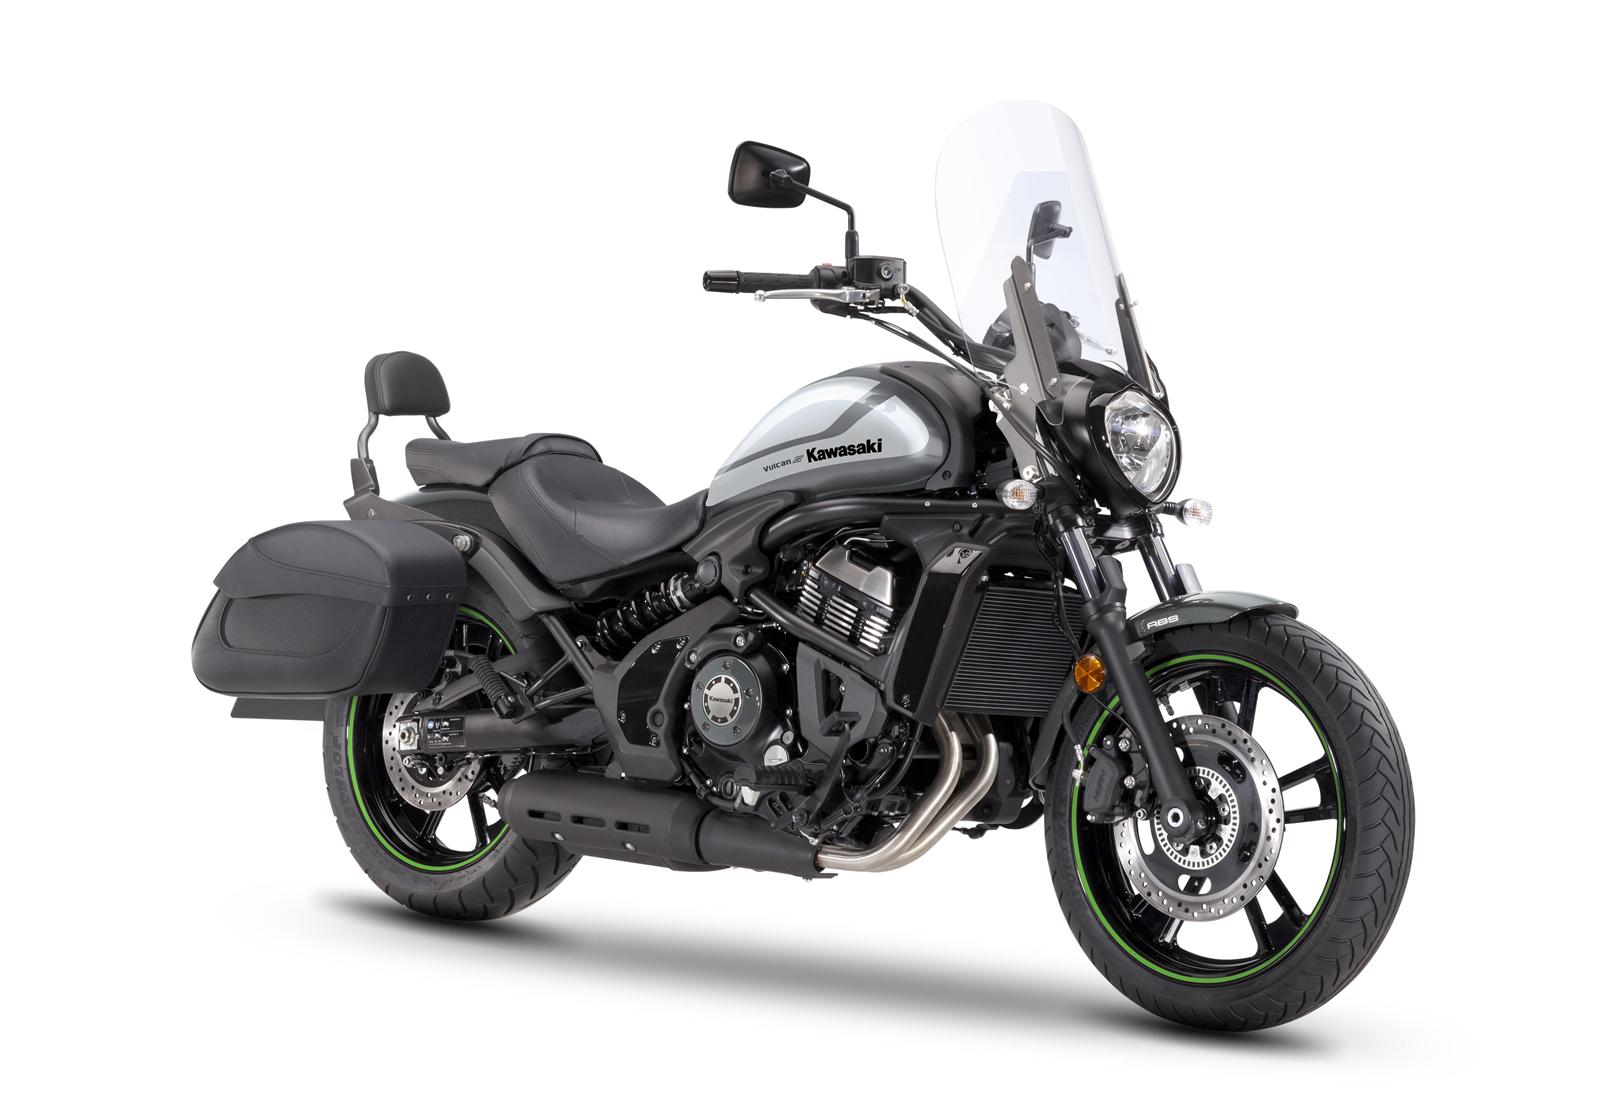 Kawasaki Vulcan S CAFE Light Tourer